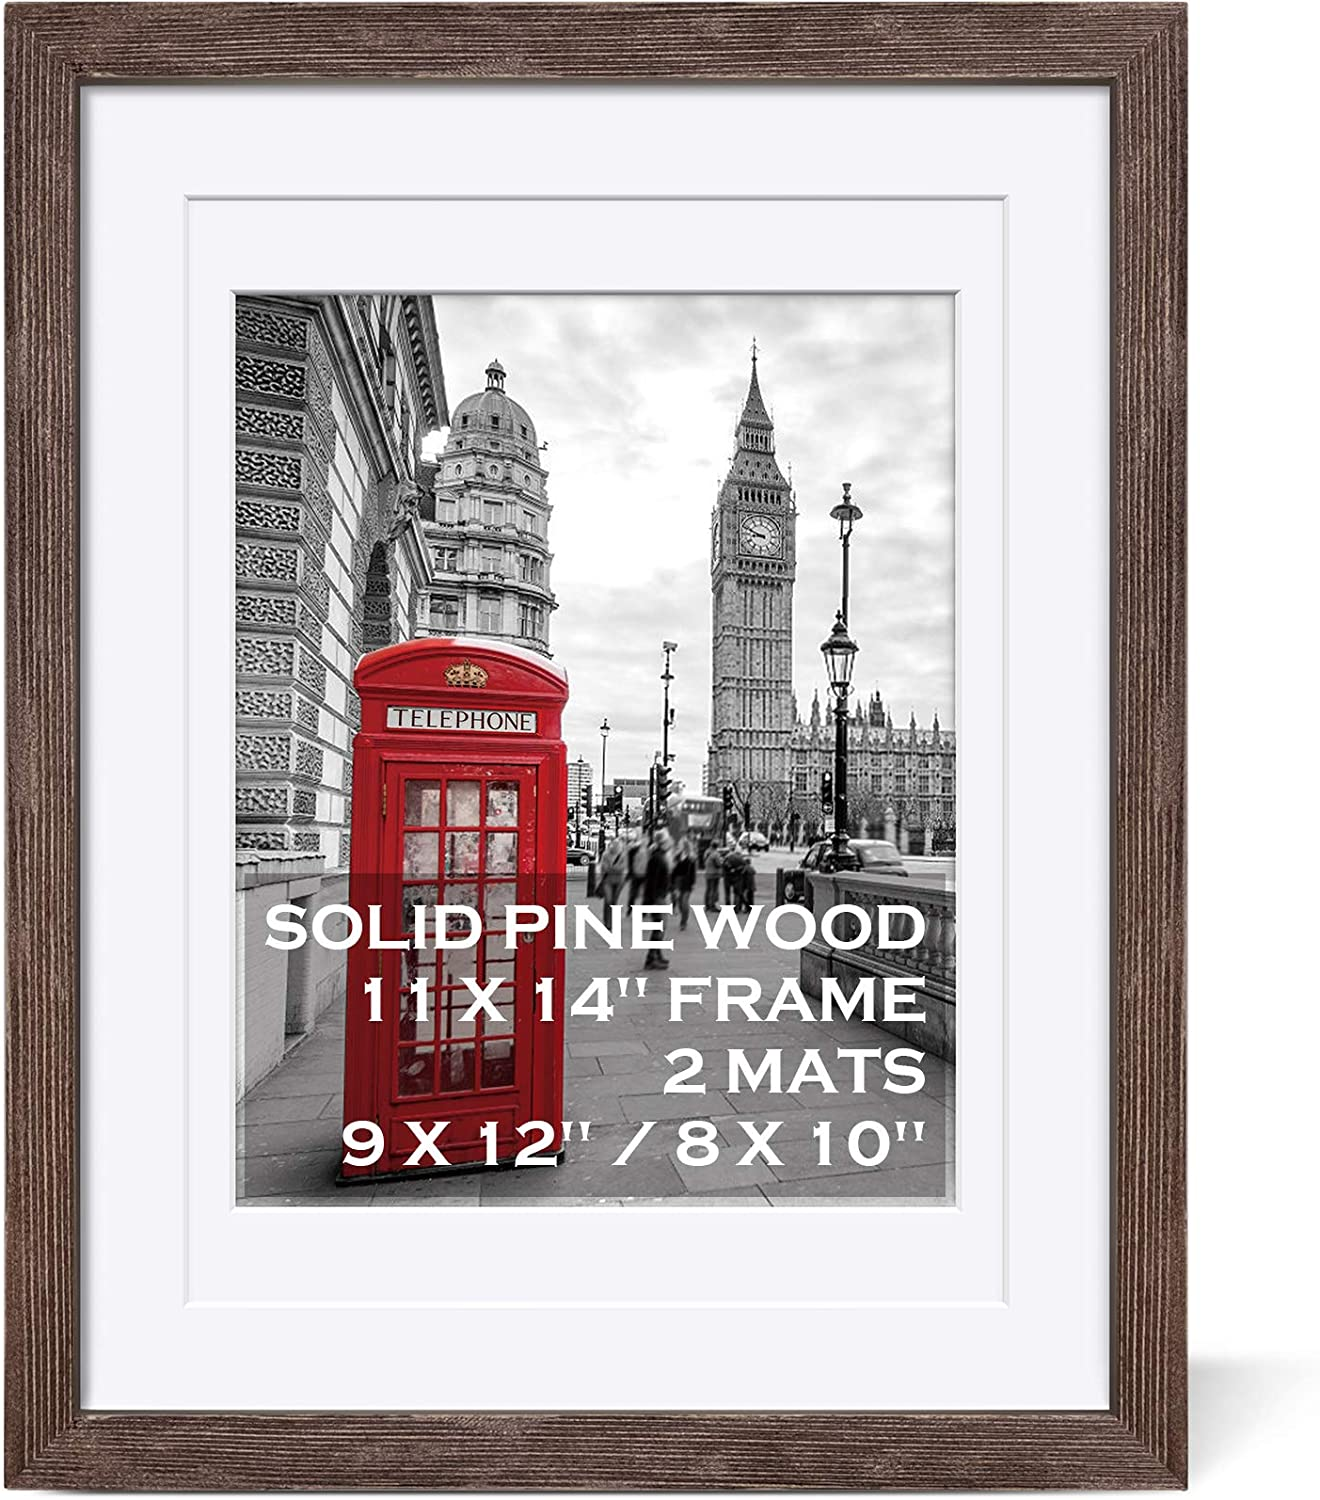 11x14 Rustic Picture Frames Solid Wood Distressed Brown Display Picture 9x12 or 8x10 with Mat or 11x14 Frame without Mat - Farmhouse Wooden Photo Frame 11x14 with 2 Mats for Wall Mounting or Table Top